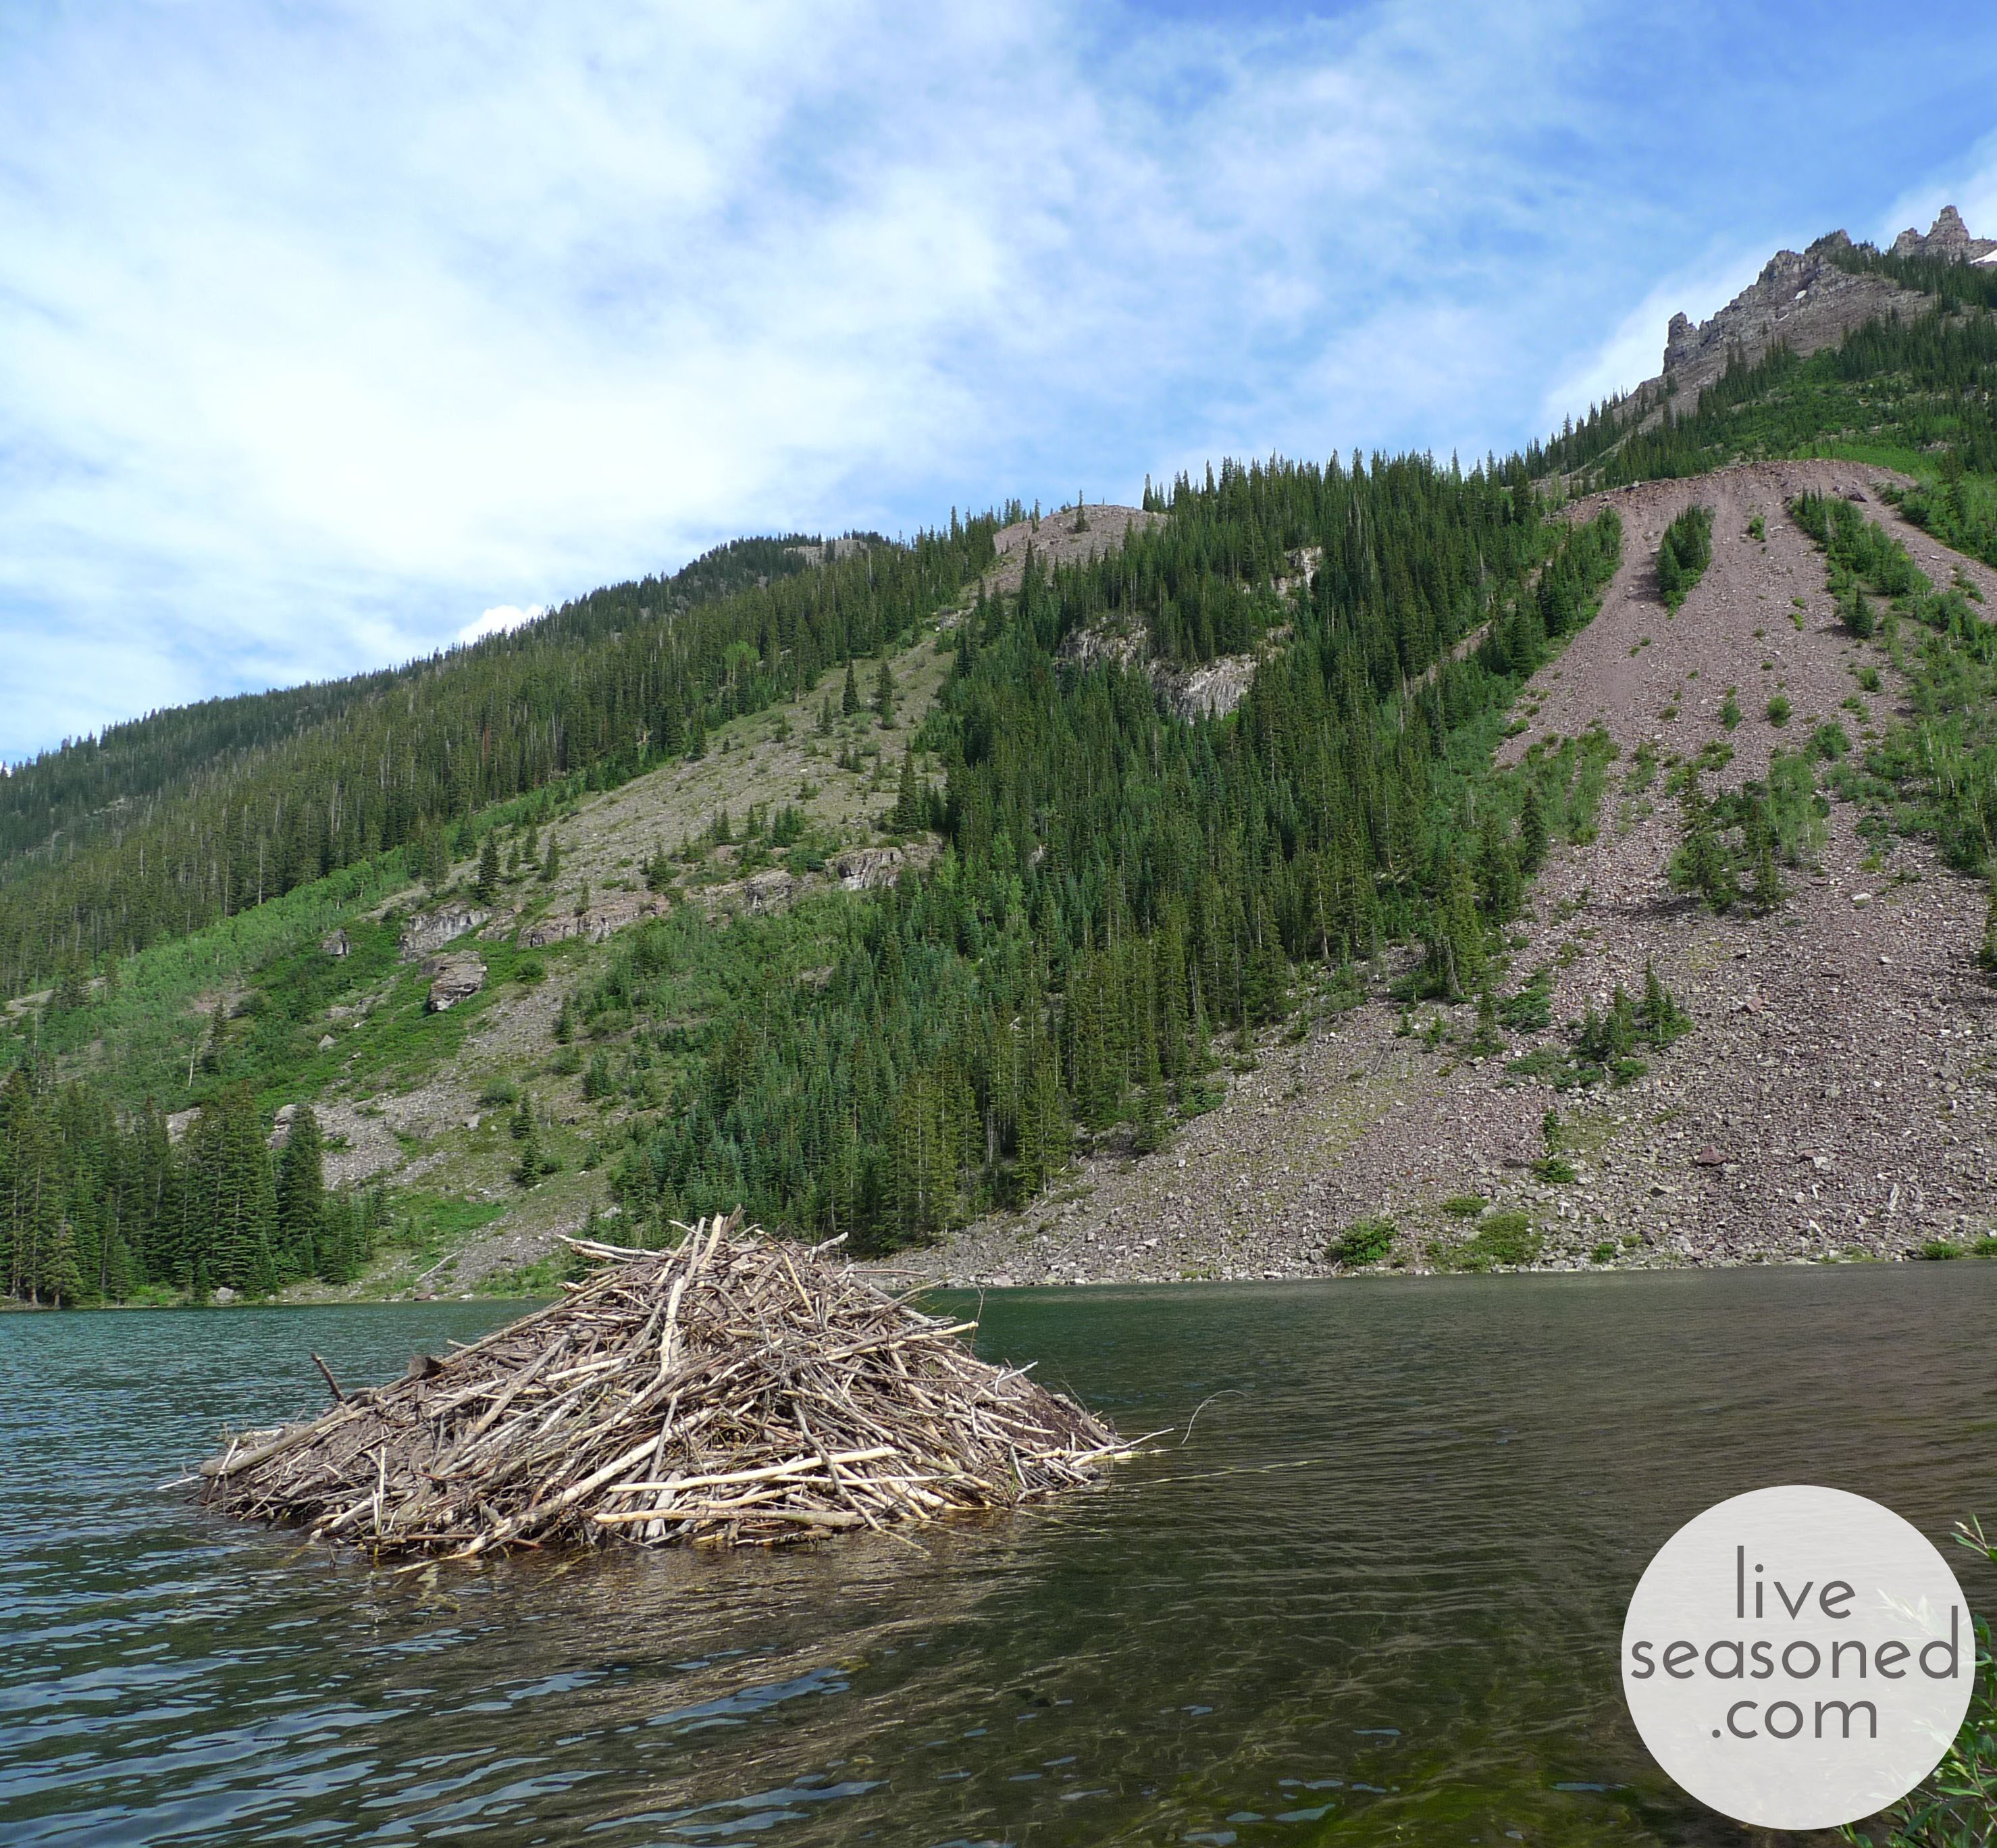 liveseasoned_summer2014_maroonbells2_wm